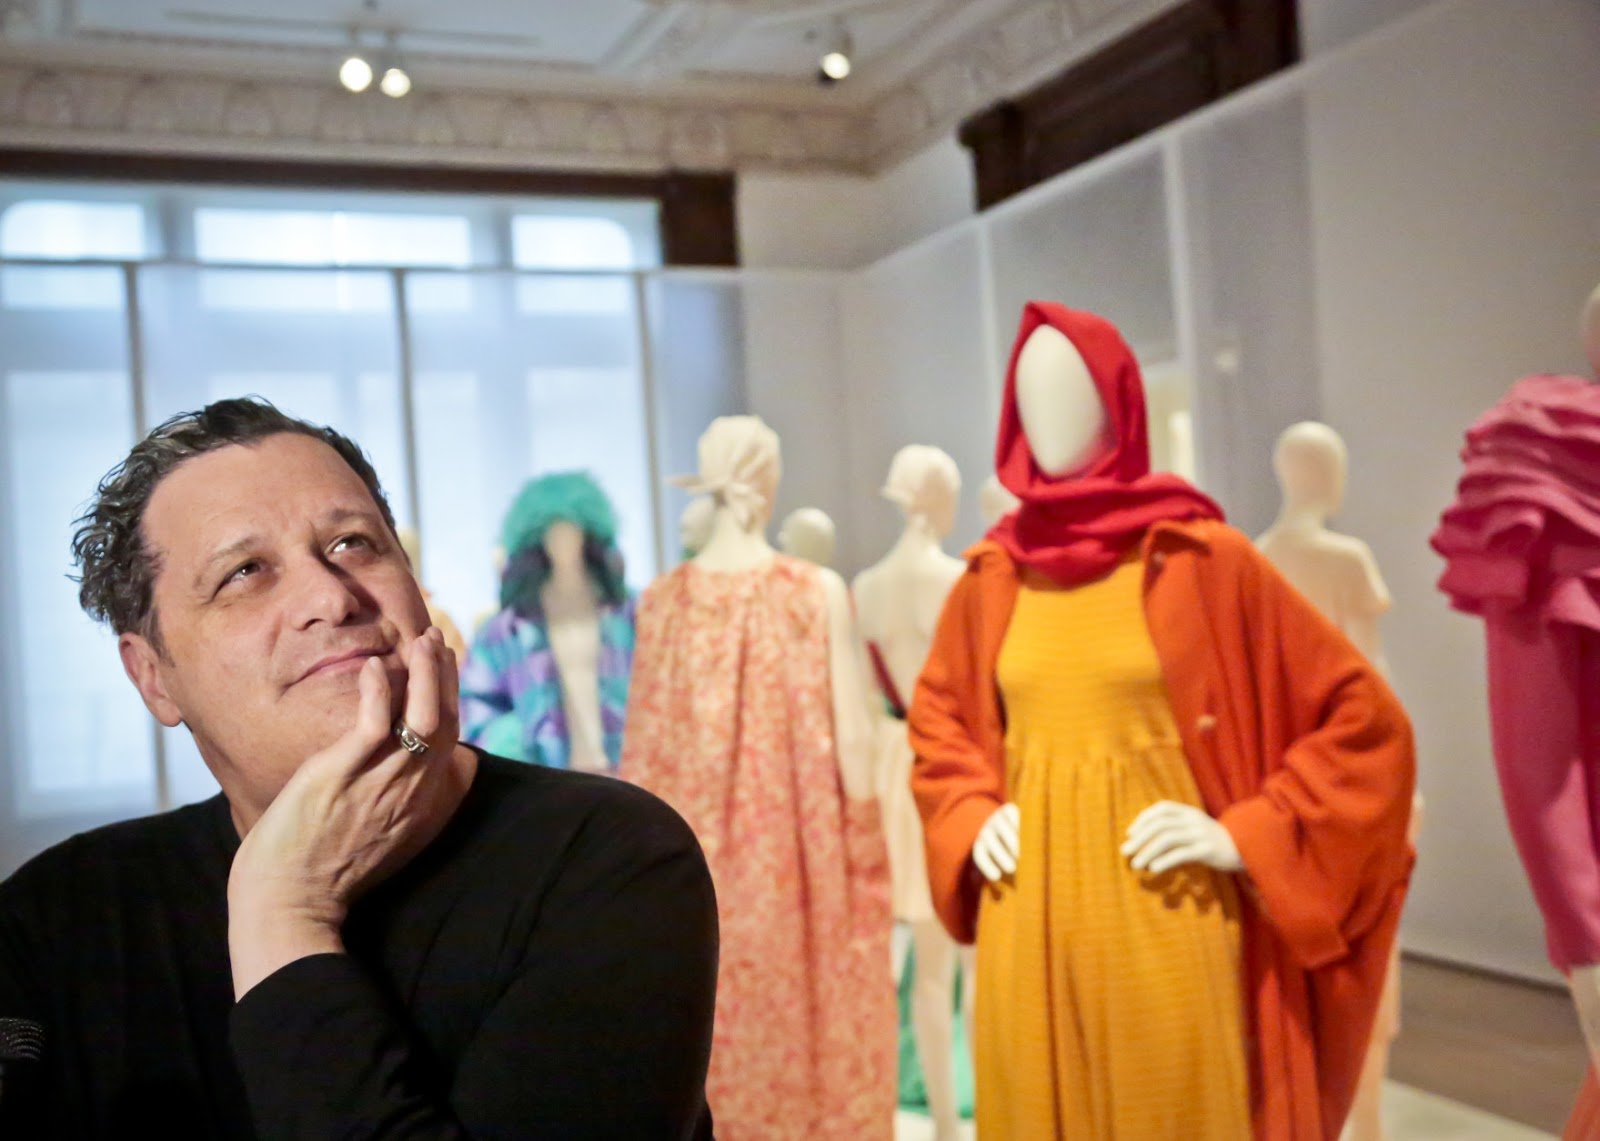 Isaac Mizrahi exhibition opens in New York / Fashion news March 2016 via www.fashionedbylove.co.uk